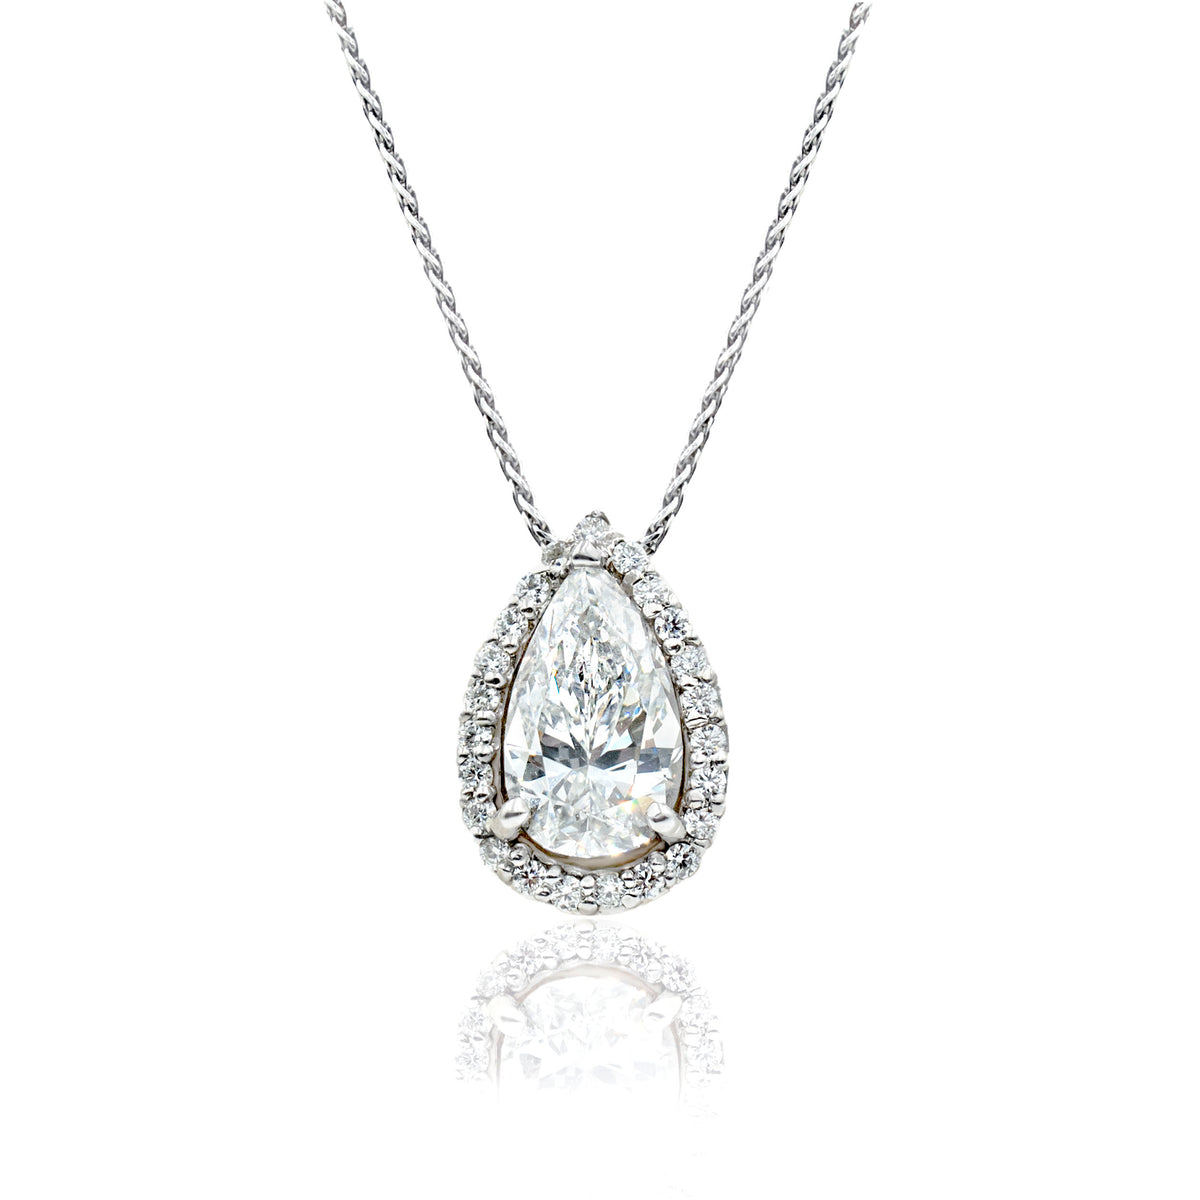 14K White Gold Pear Diamond Halo Pendant